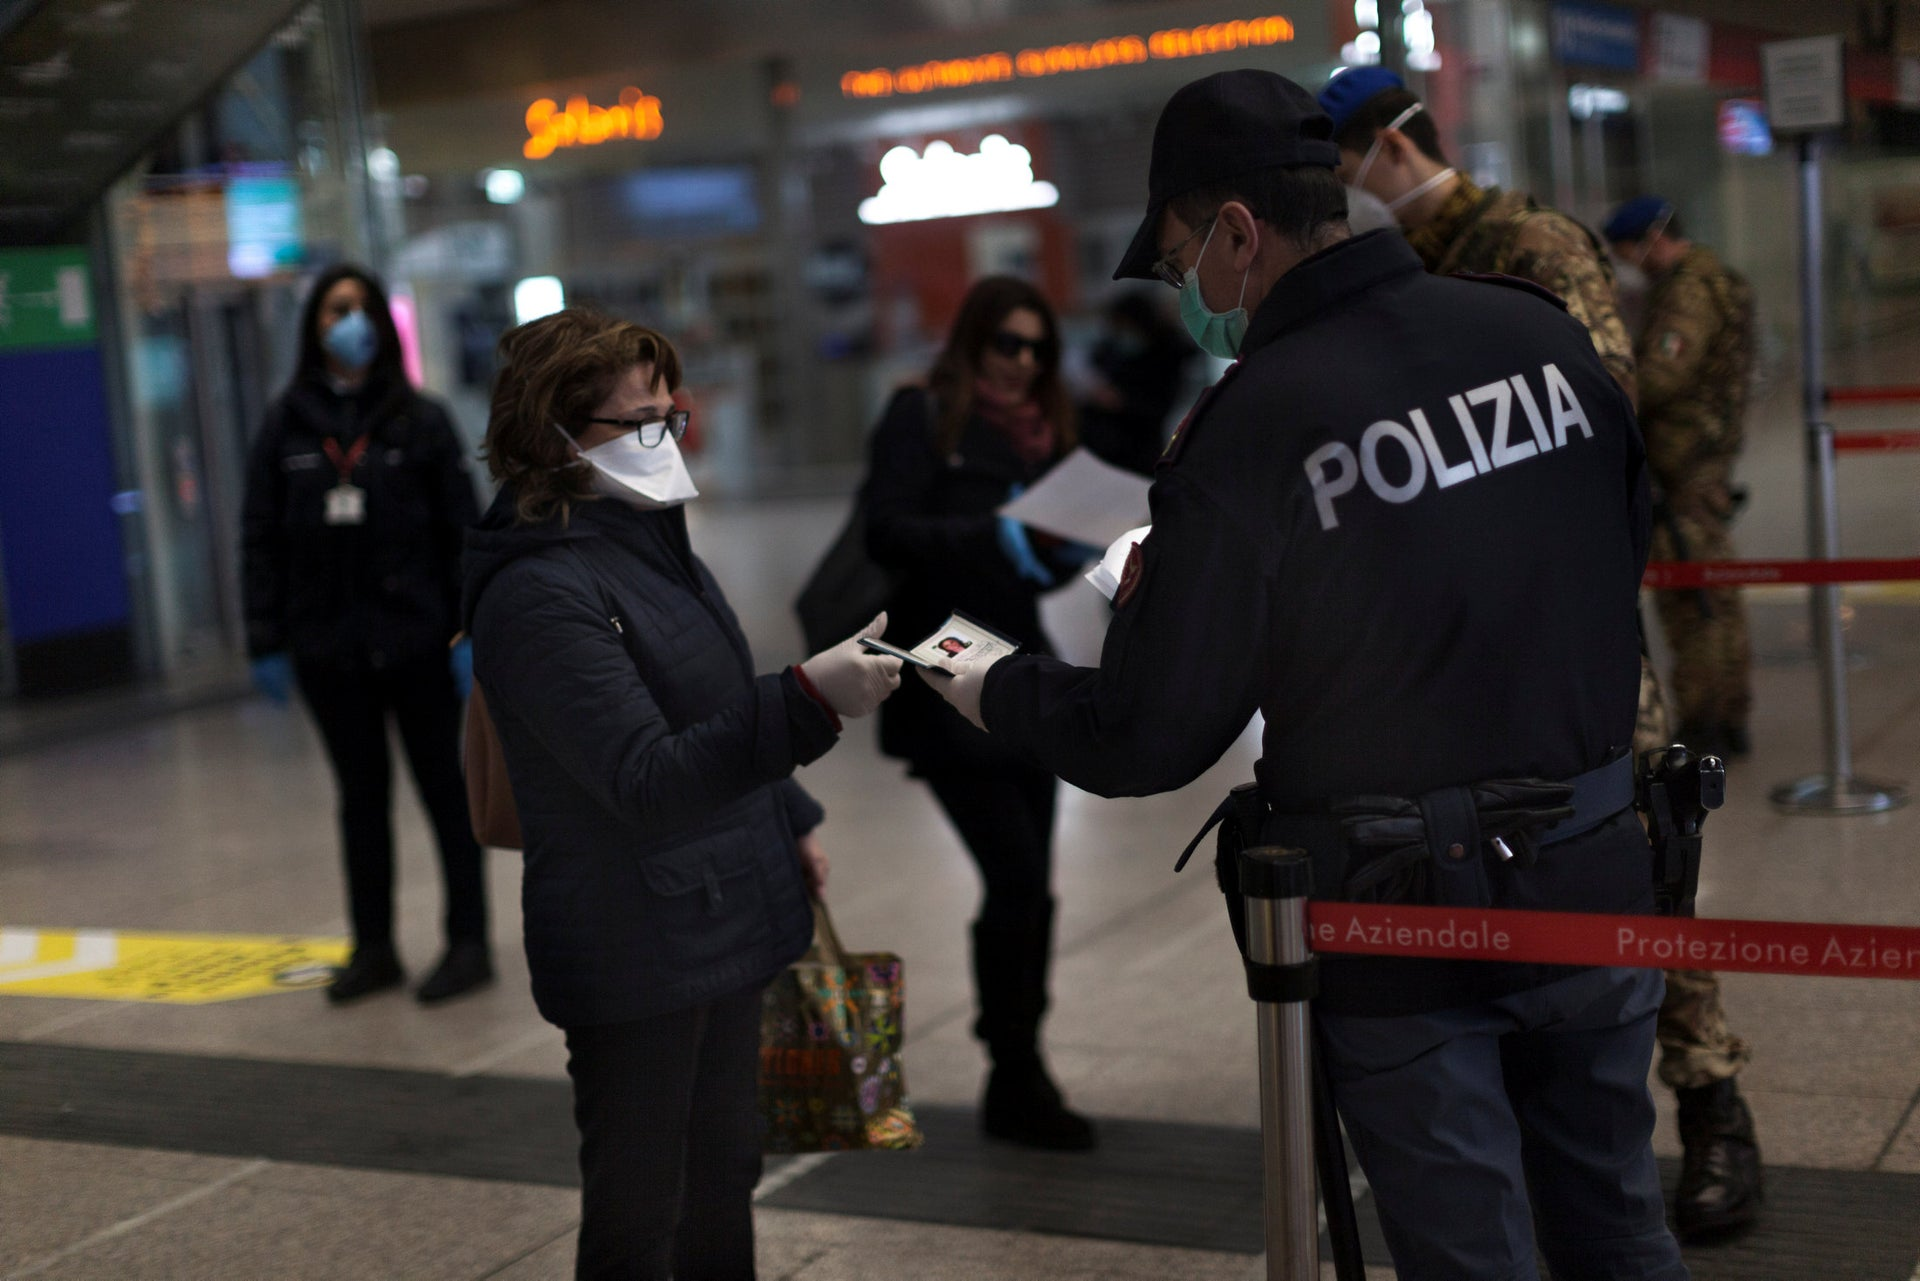 Italian police check people's documents.